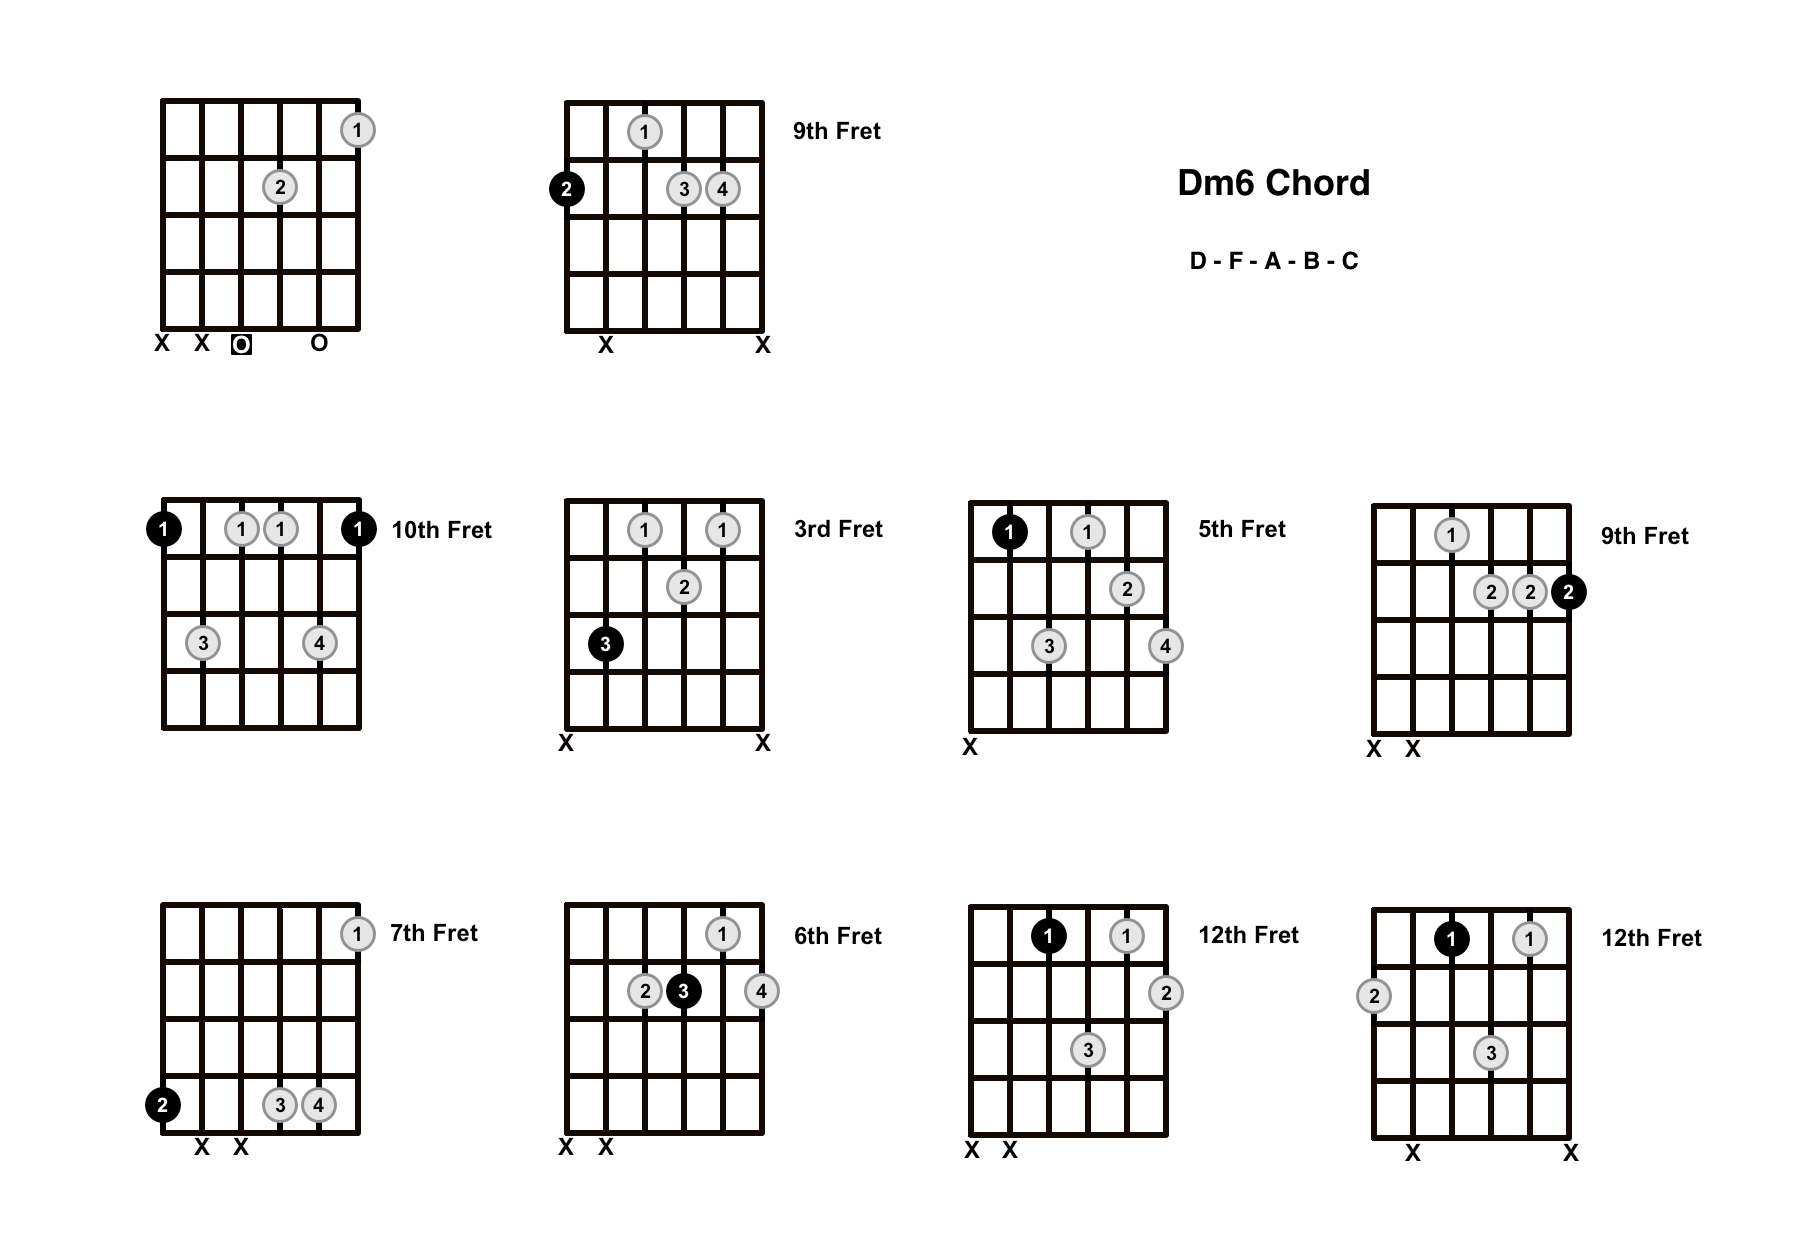 Dm6 Chord On The Guitar (D minor 6) – Diagrams, Finger Positions and Theory